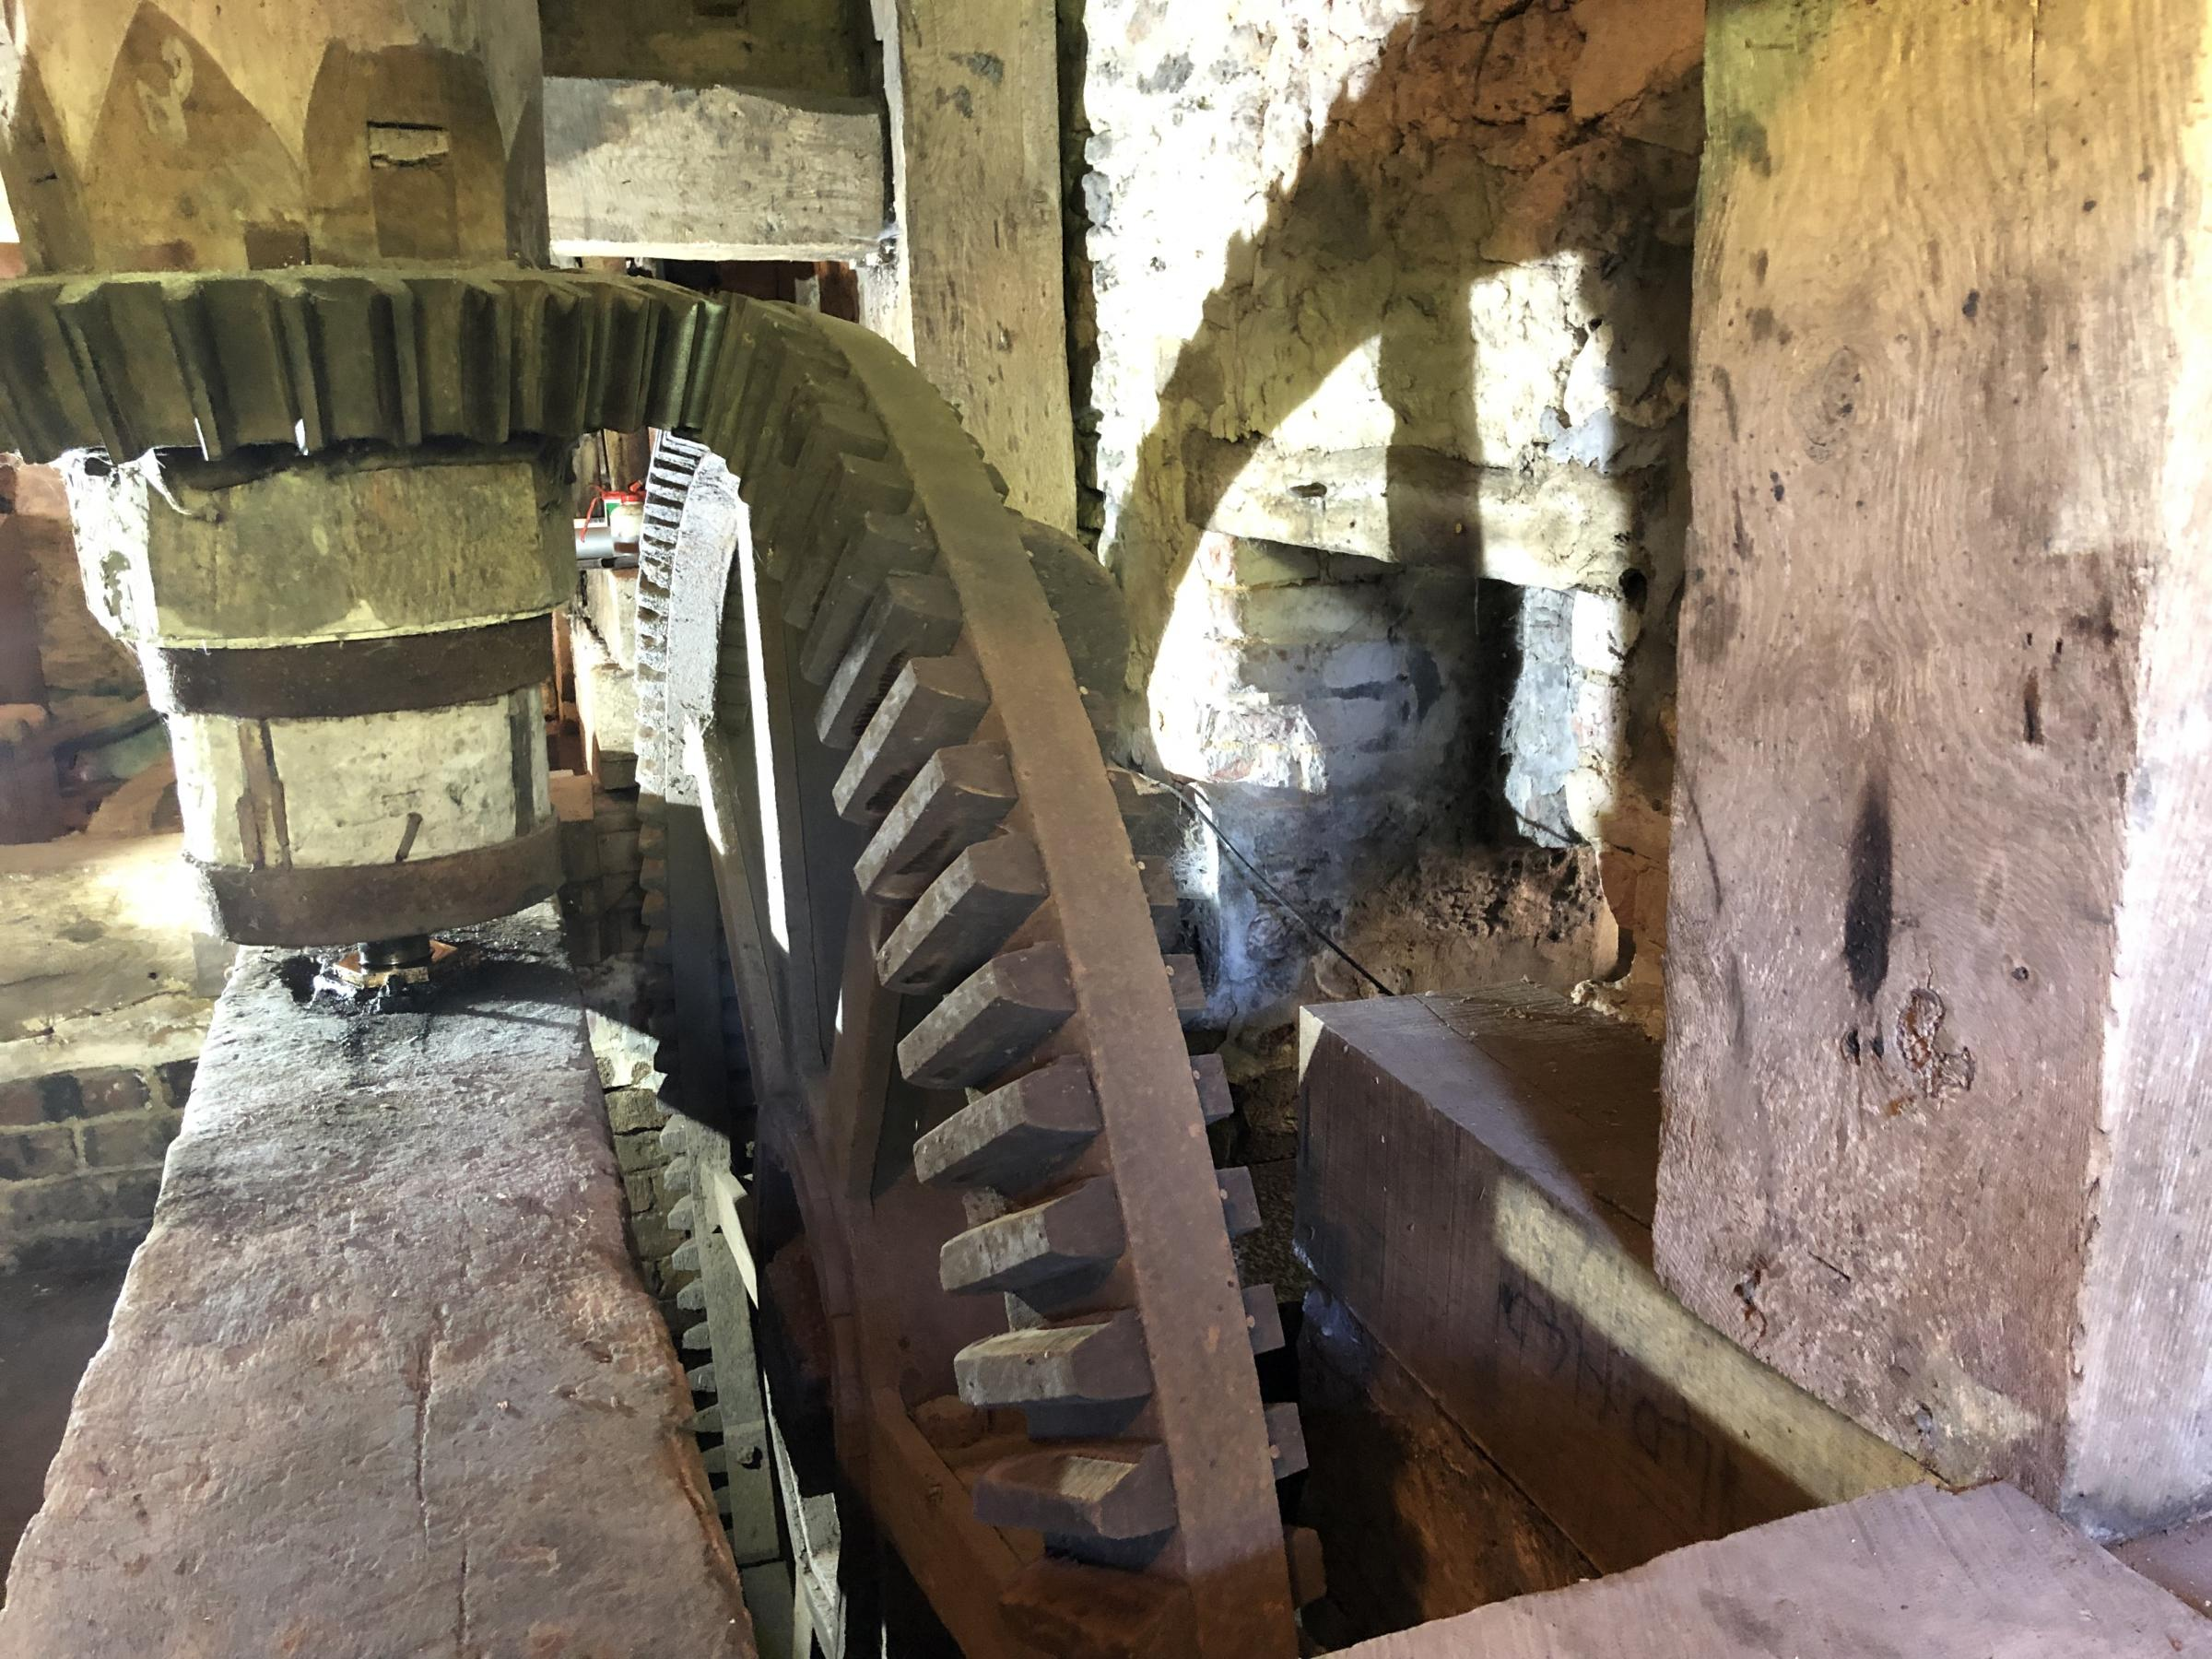 Coleshill Mill and Replica Bunker open afternoons 2020